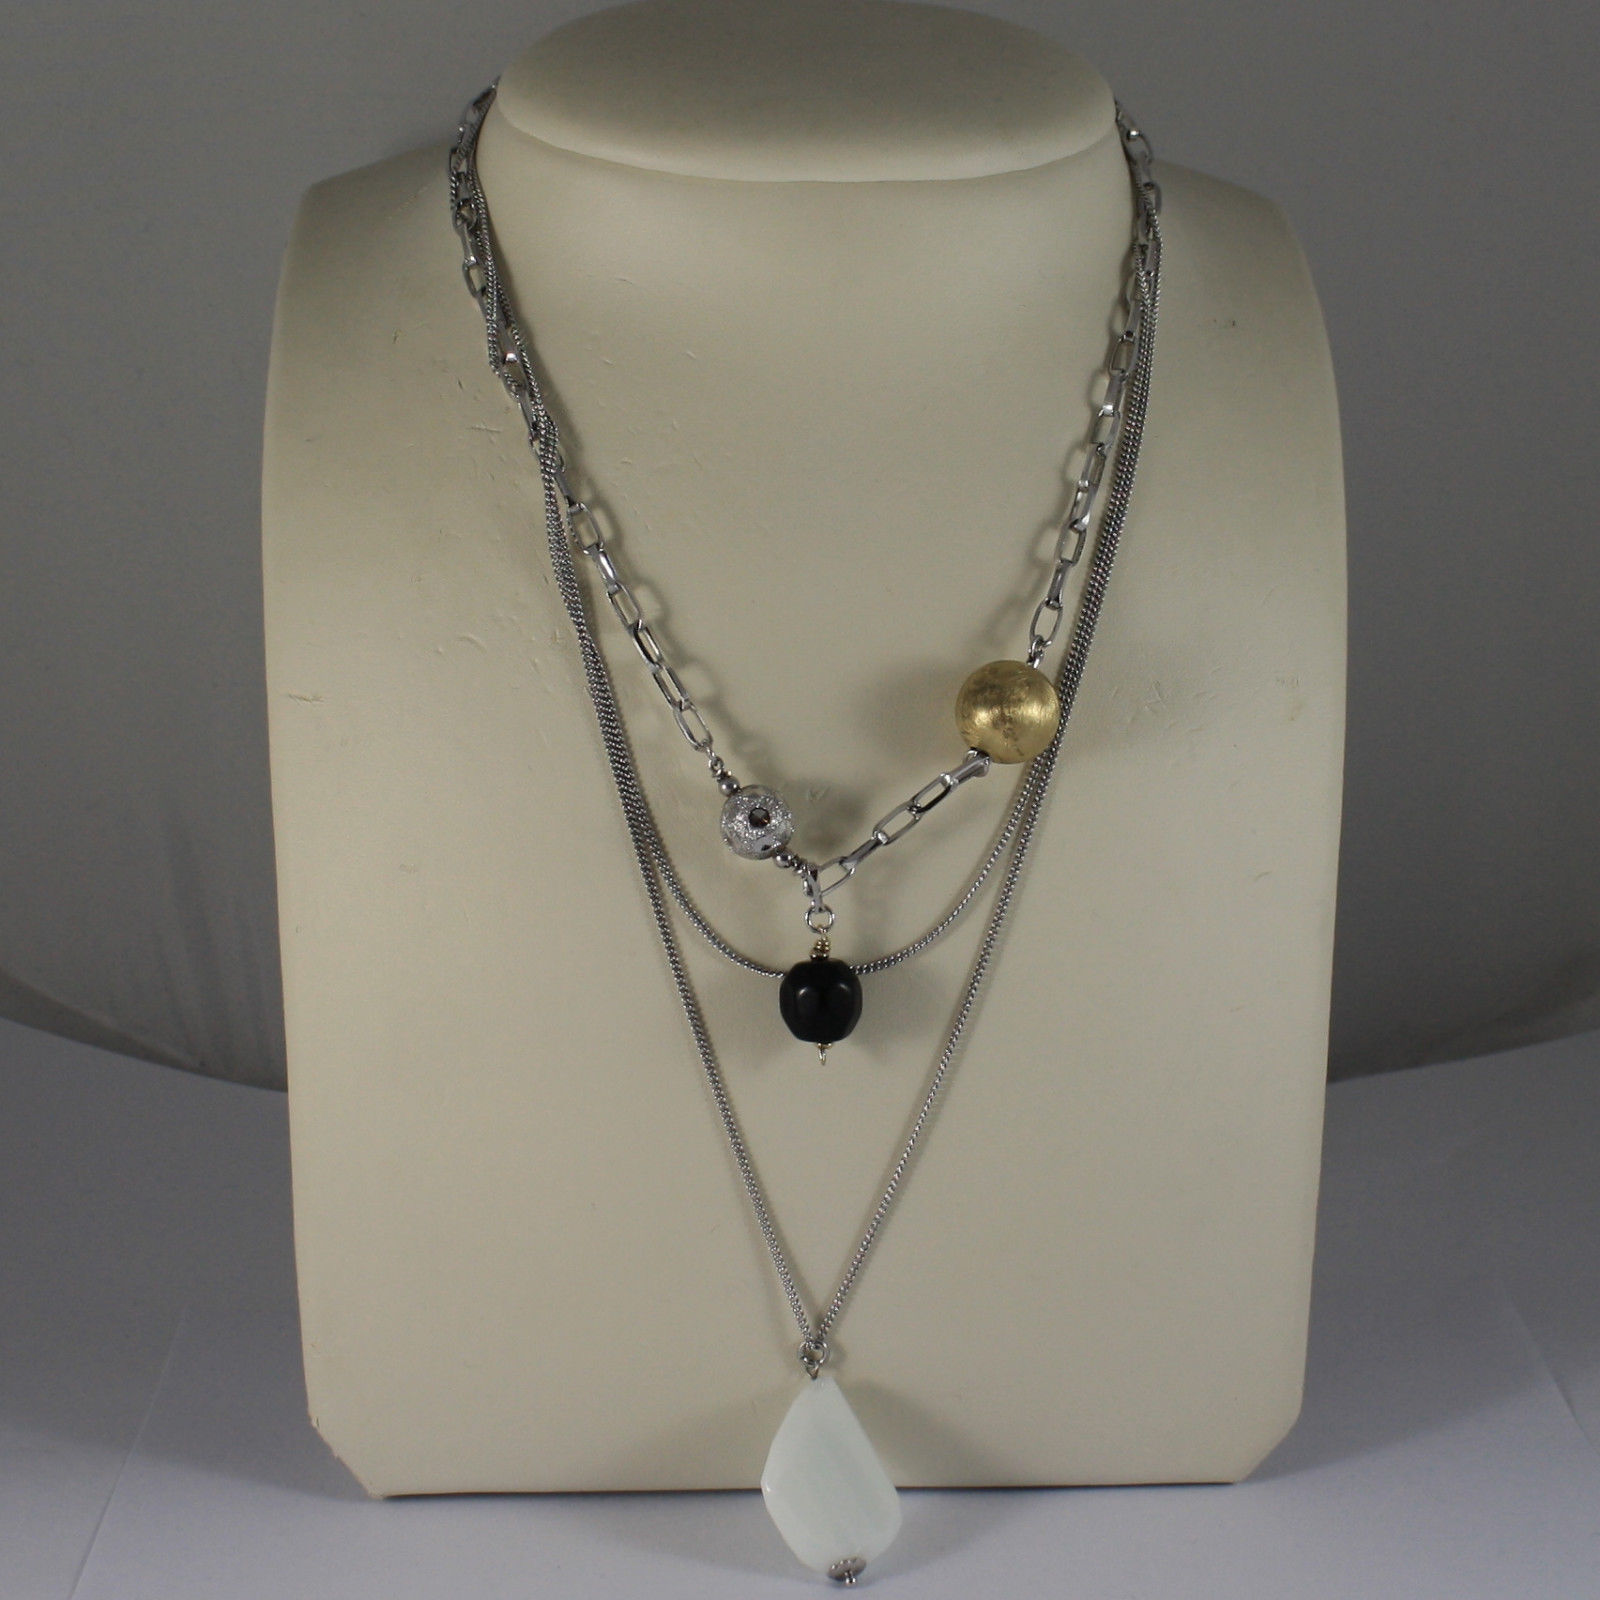 .925 RHODIUM MULTI STRAND NECKLACE WITH BLACK ONYX, WHITE AGATE AND SPHERES